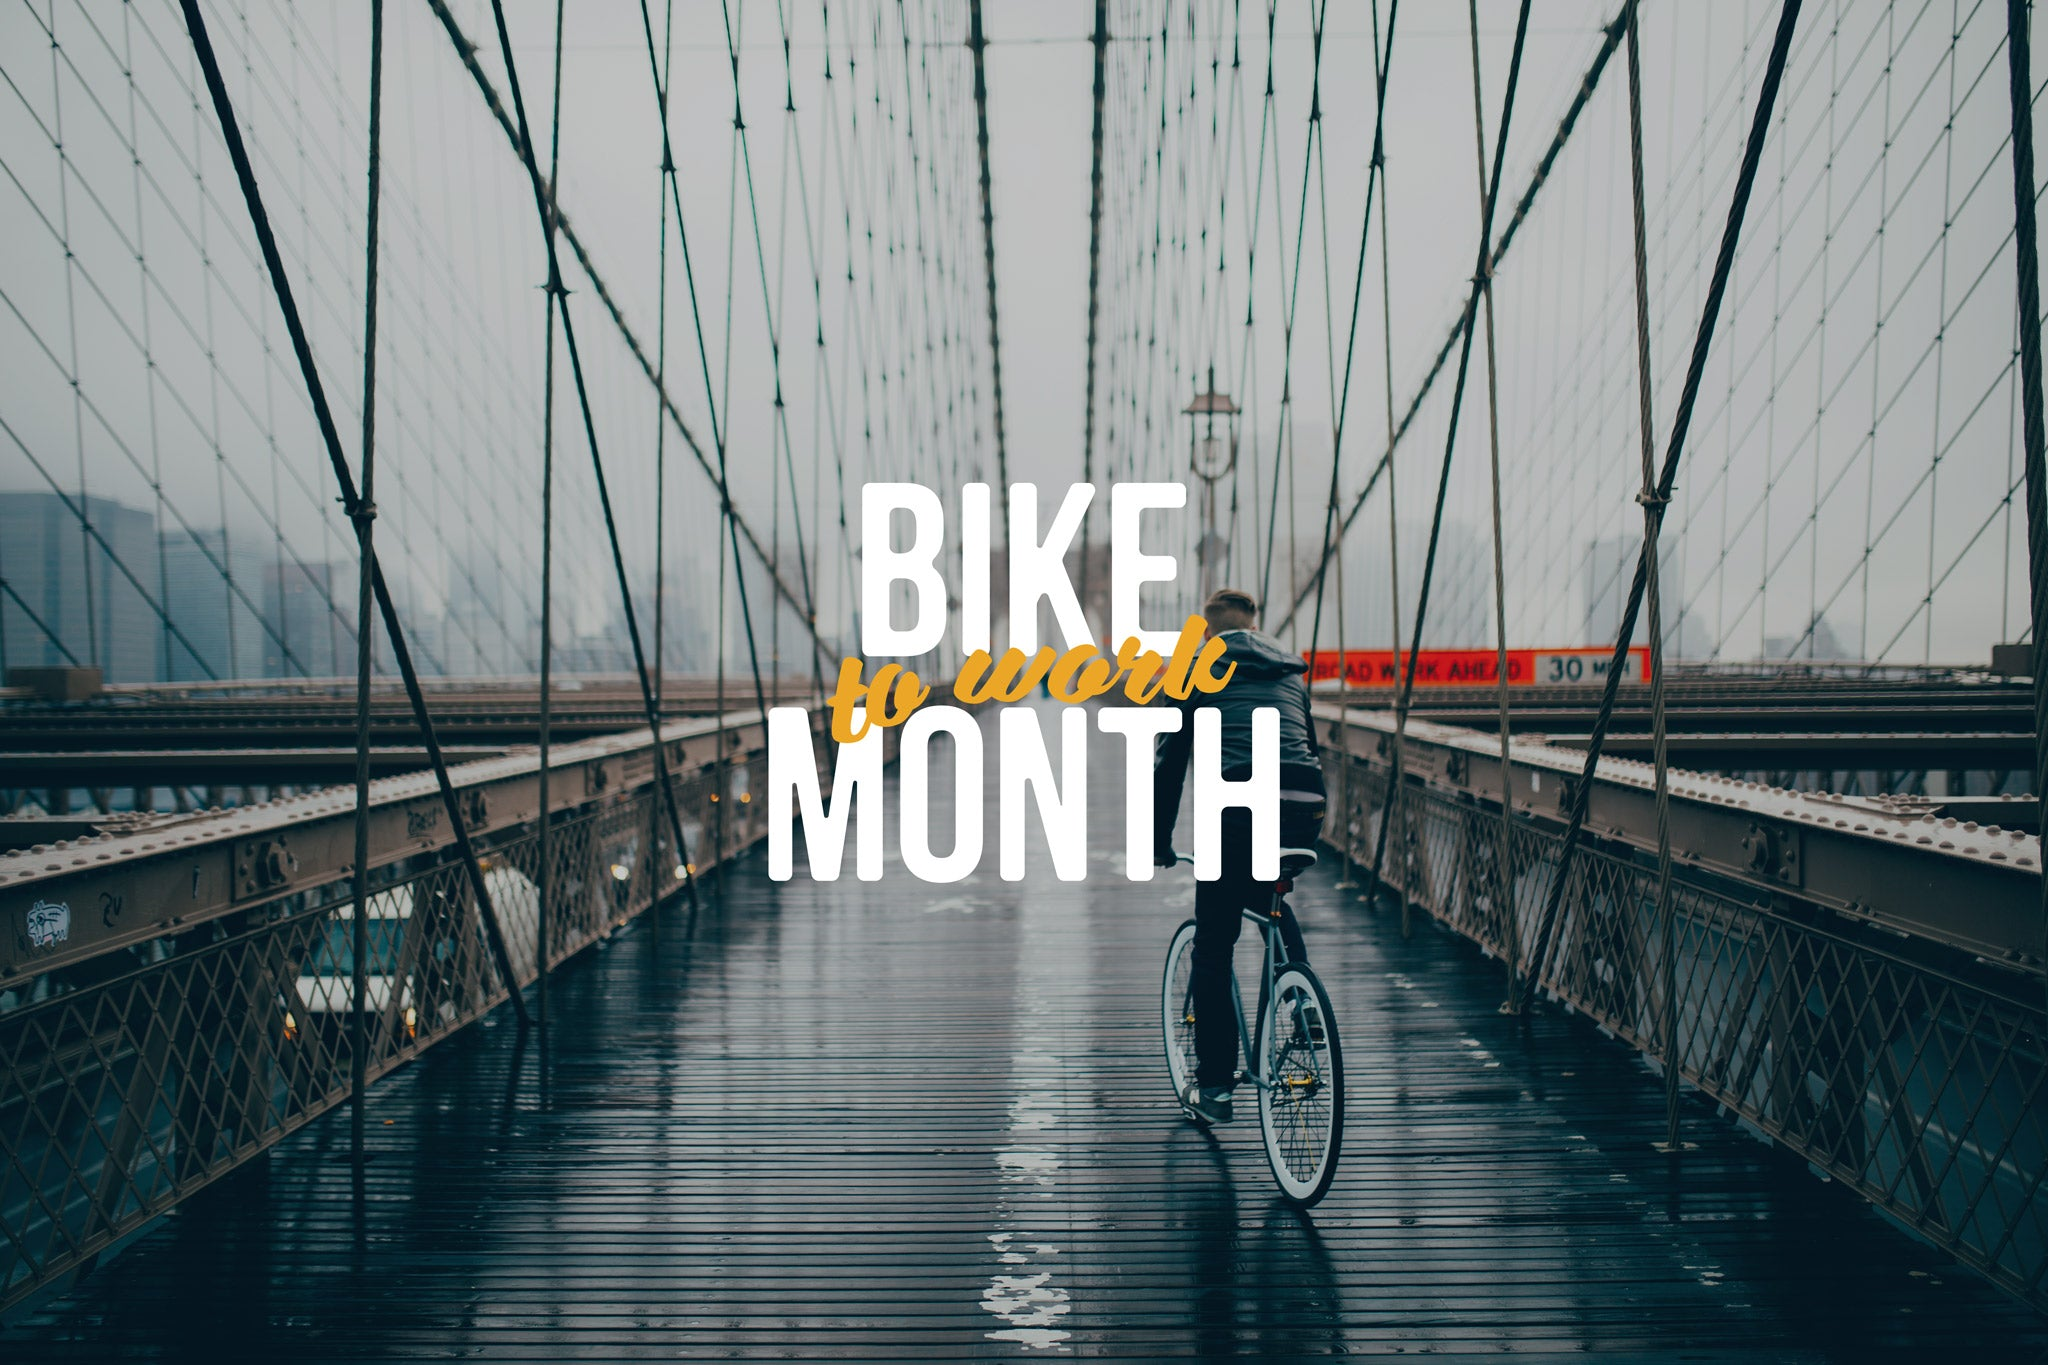 National Bike Month Wallpaper Pure Cycles